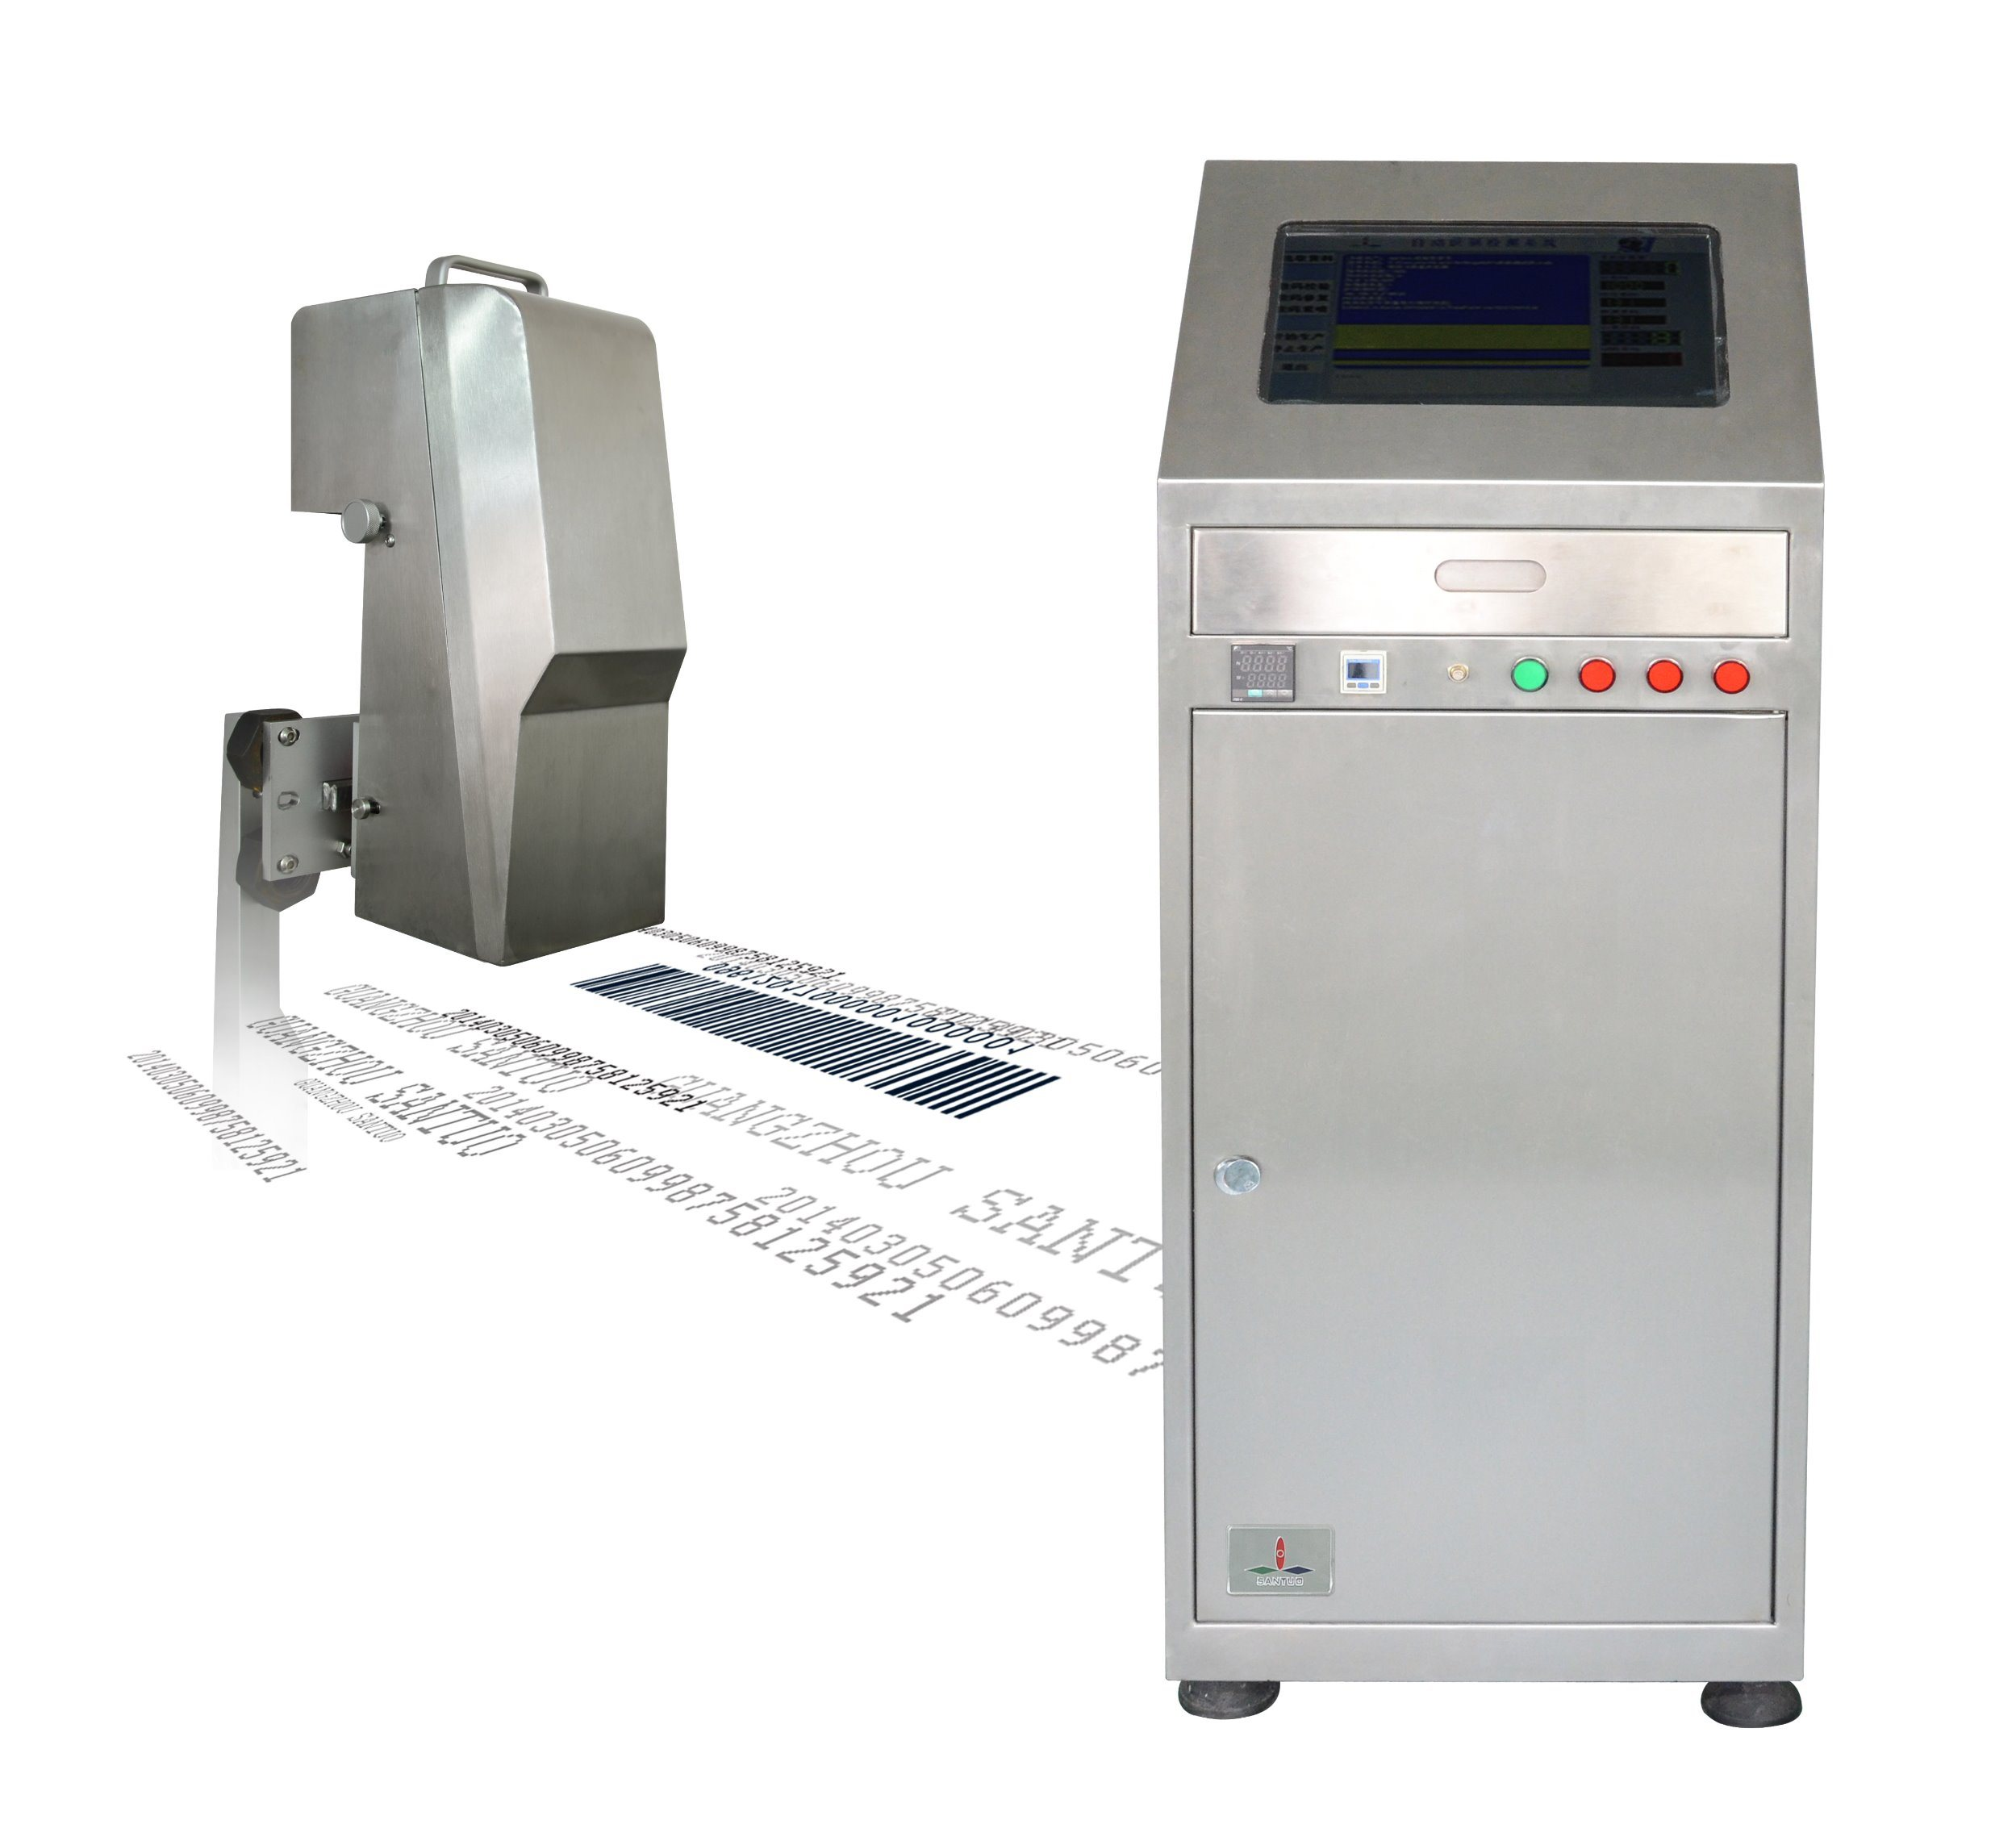 Santuo High Resolution Dod Printing Machine